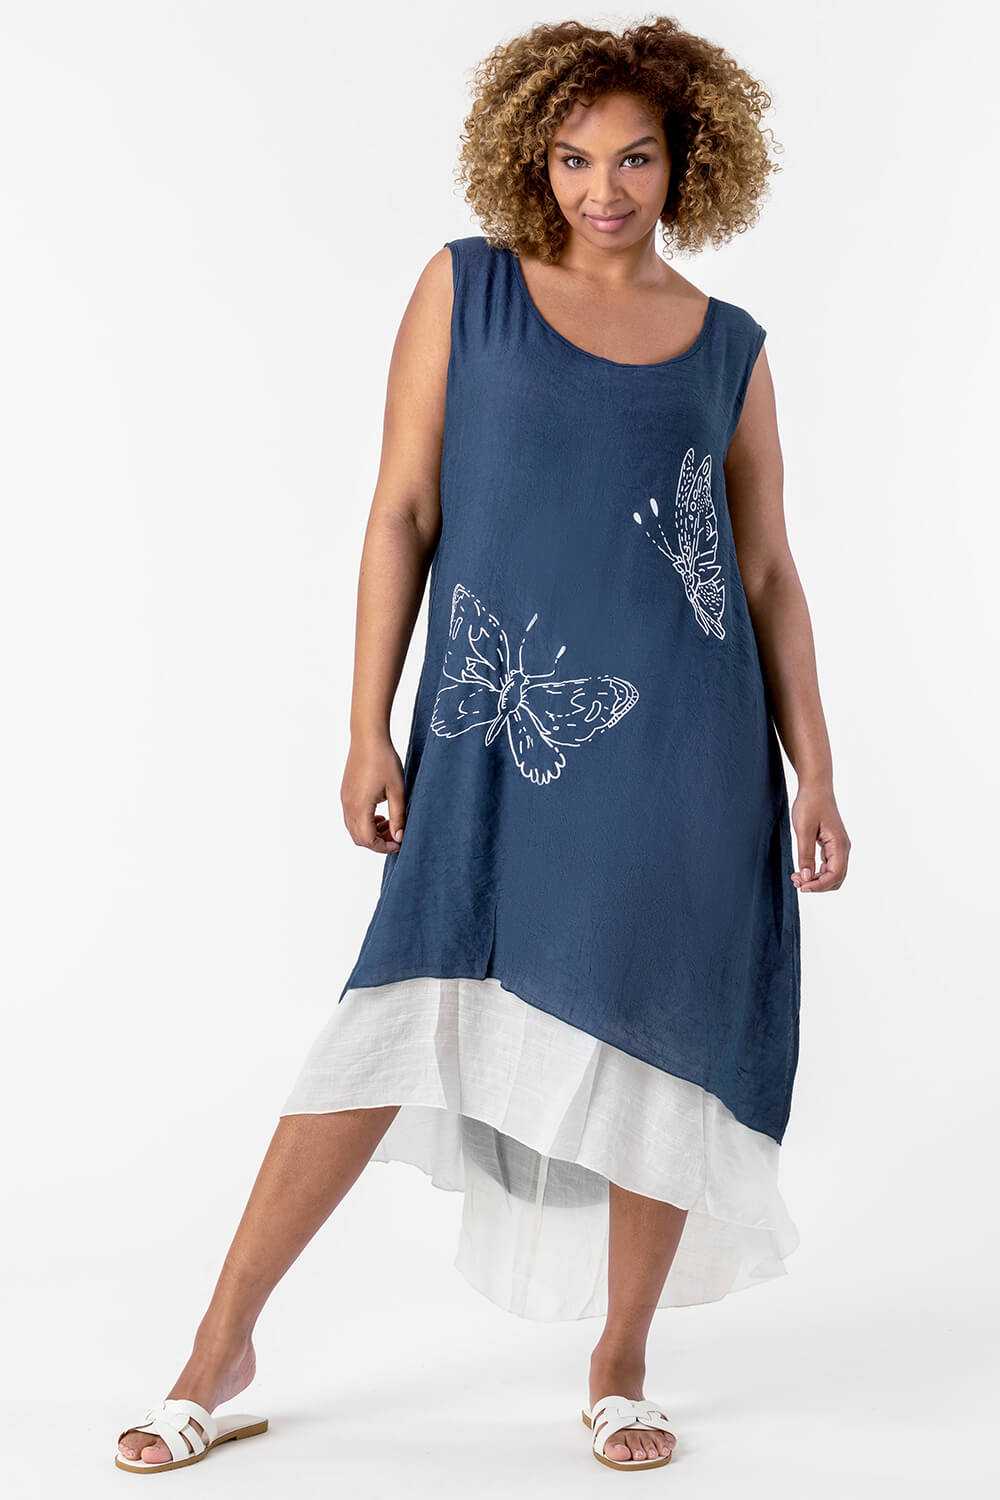 Roman Originals Curve Butterfly Print Layered Dress in Navy